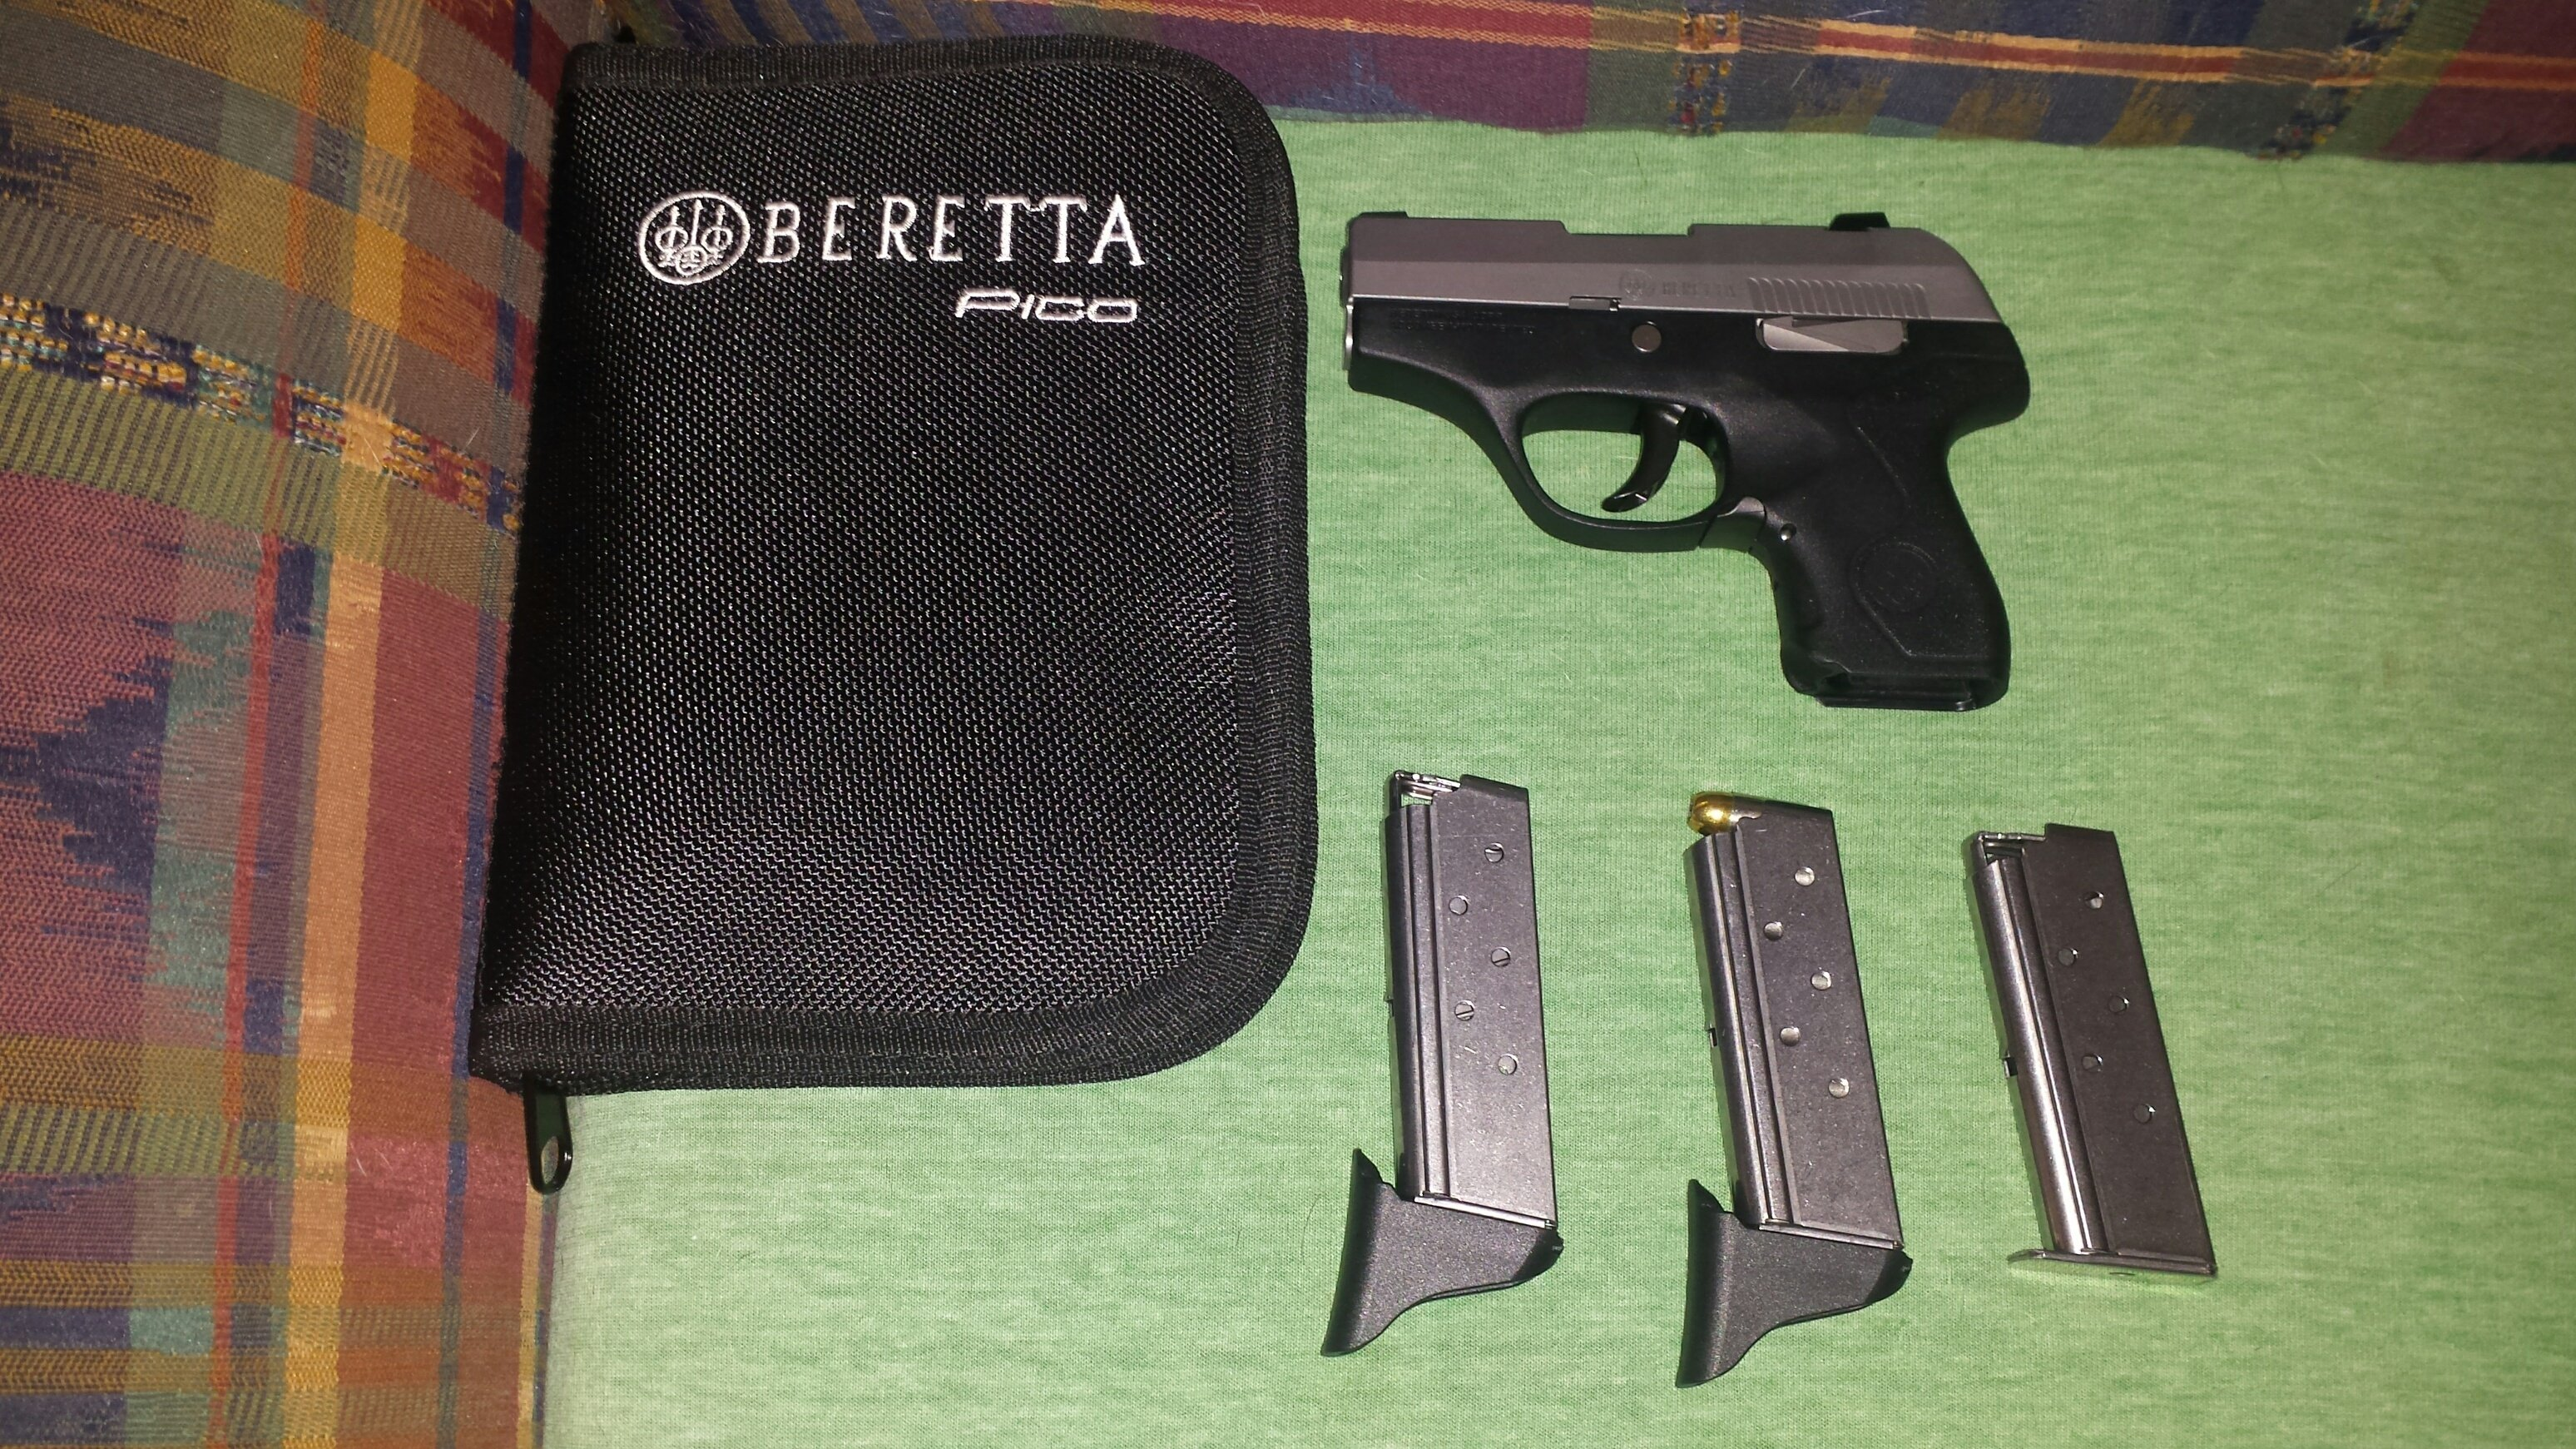 A Peek at the Beretta Pico